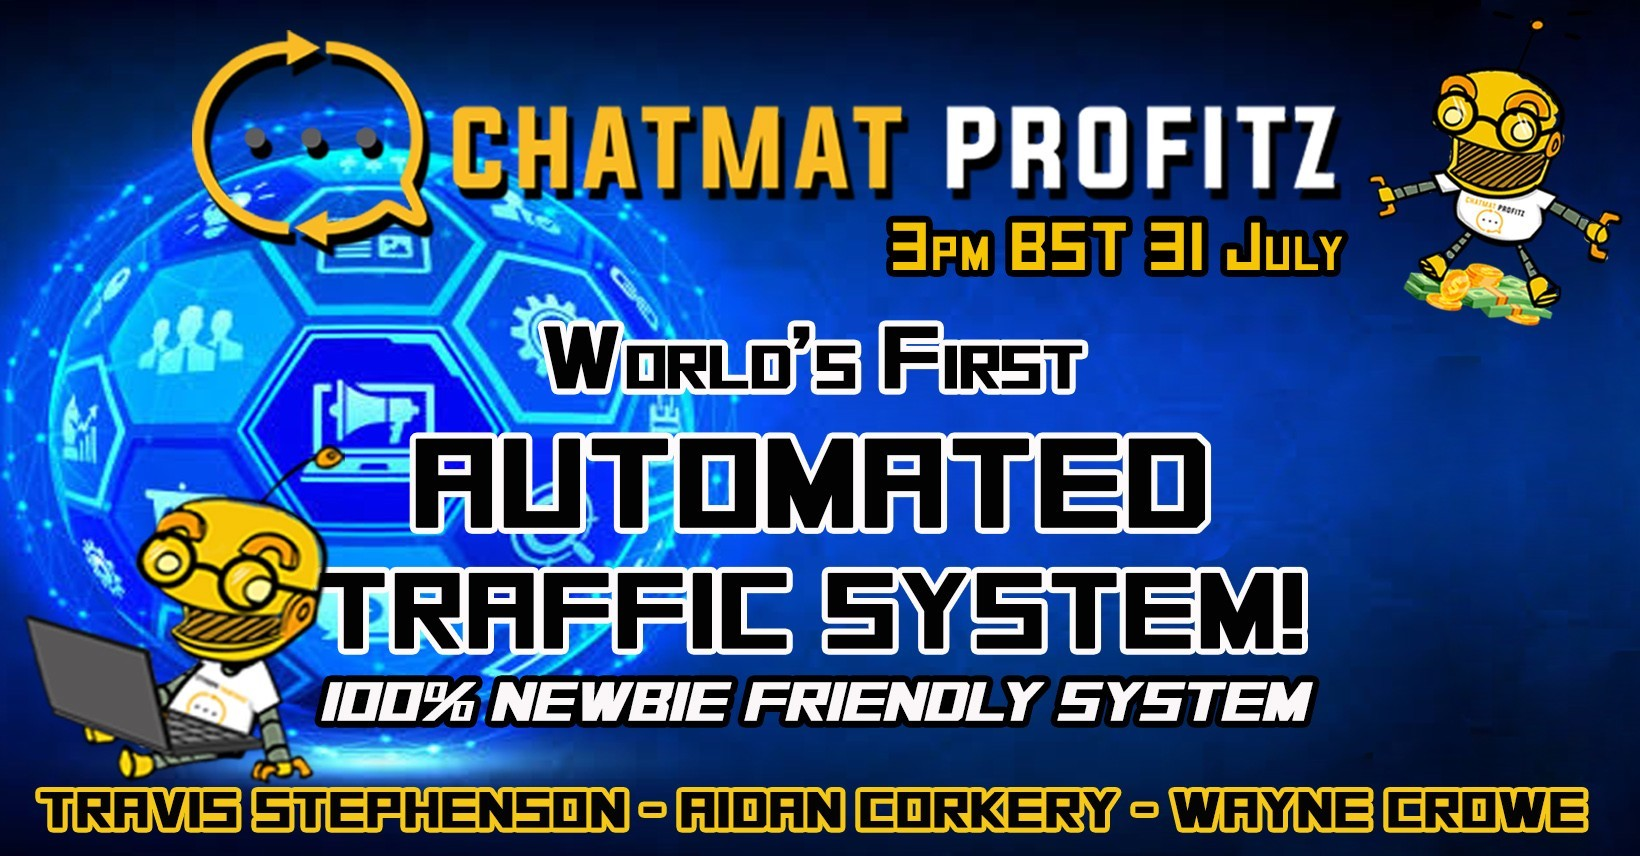 COMPLETE AUTOMATED SYSTEM